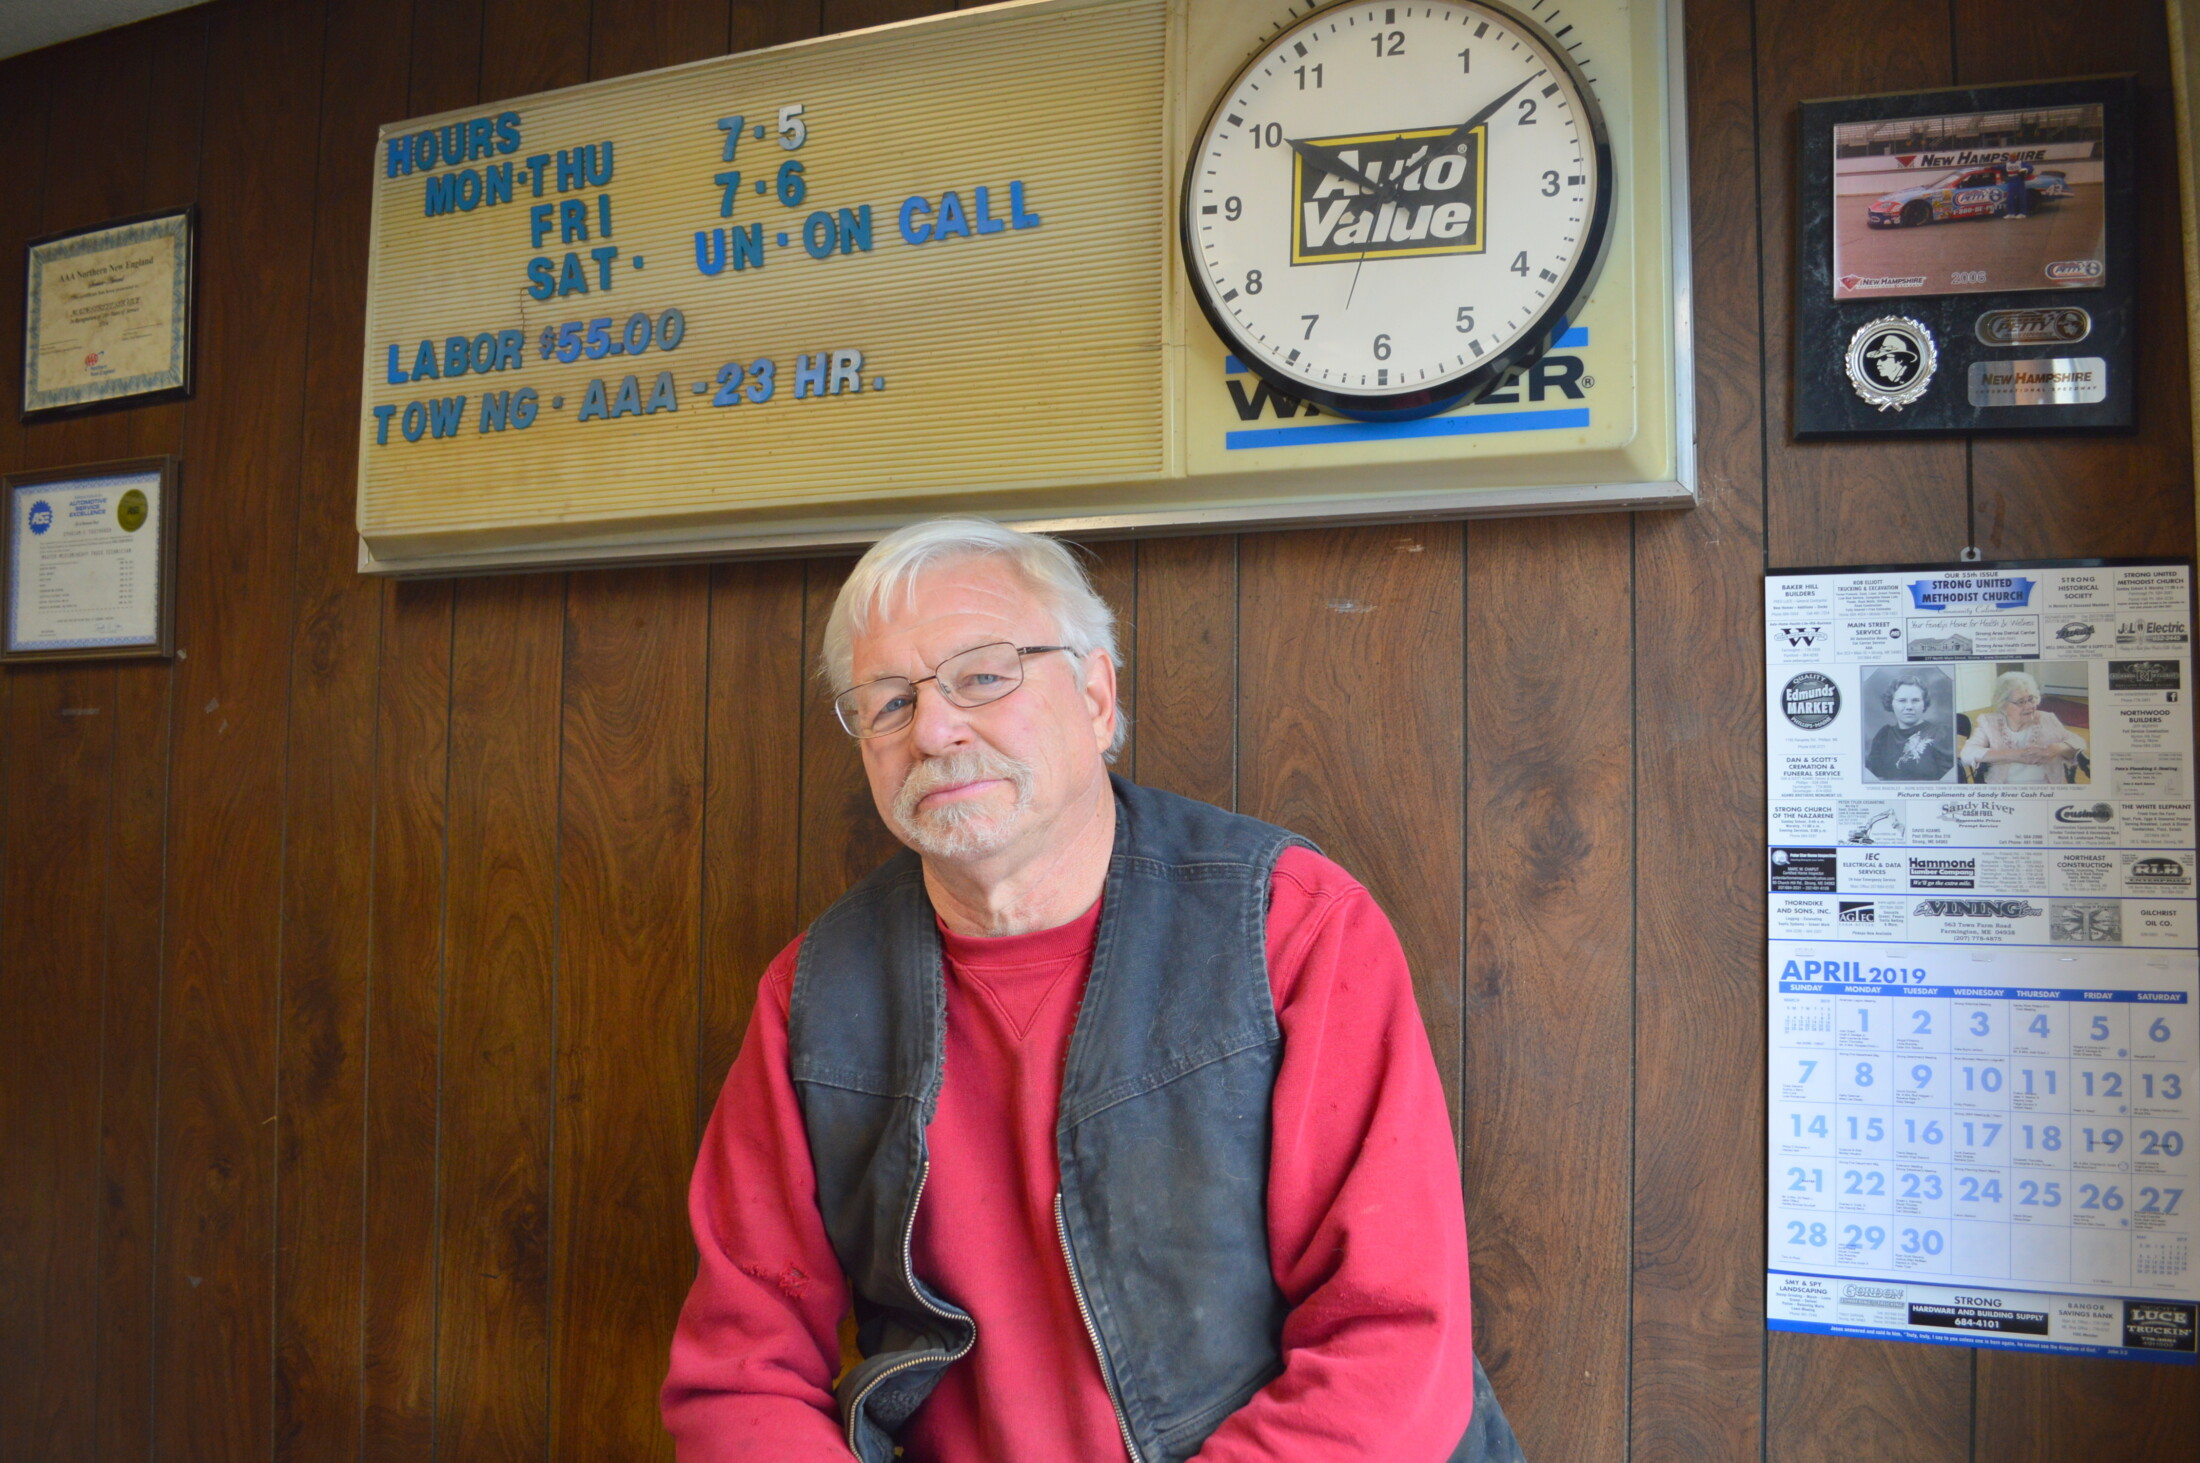 Garage Experts Of The Central Valley After 38 Years Strong Garage Owner Retires Lewiston Sun Journal